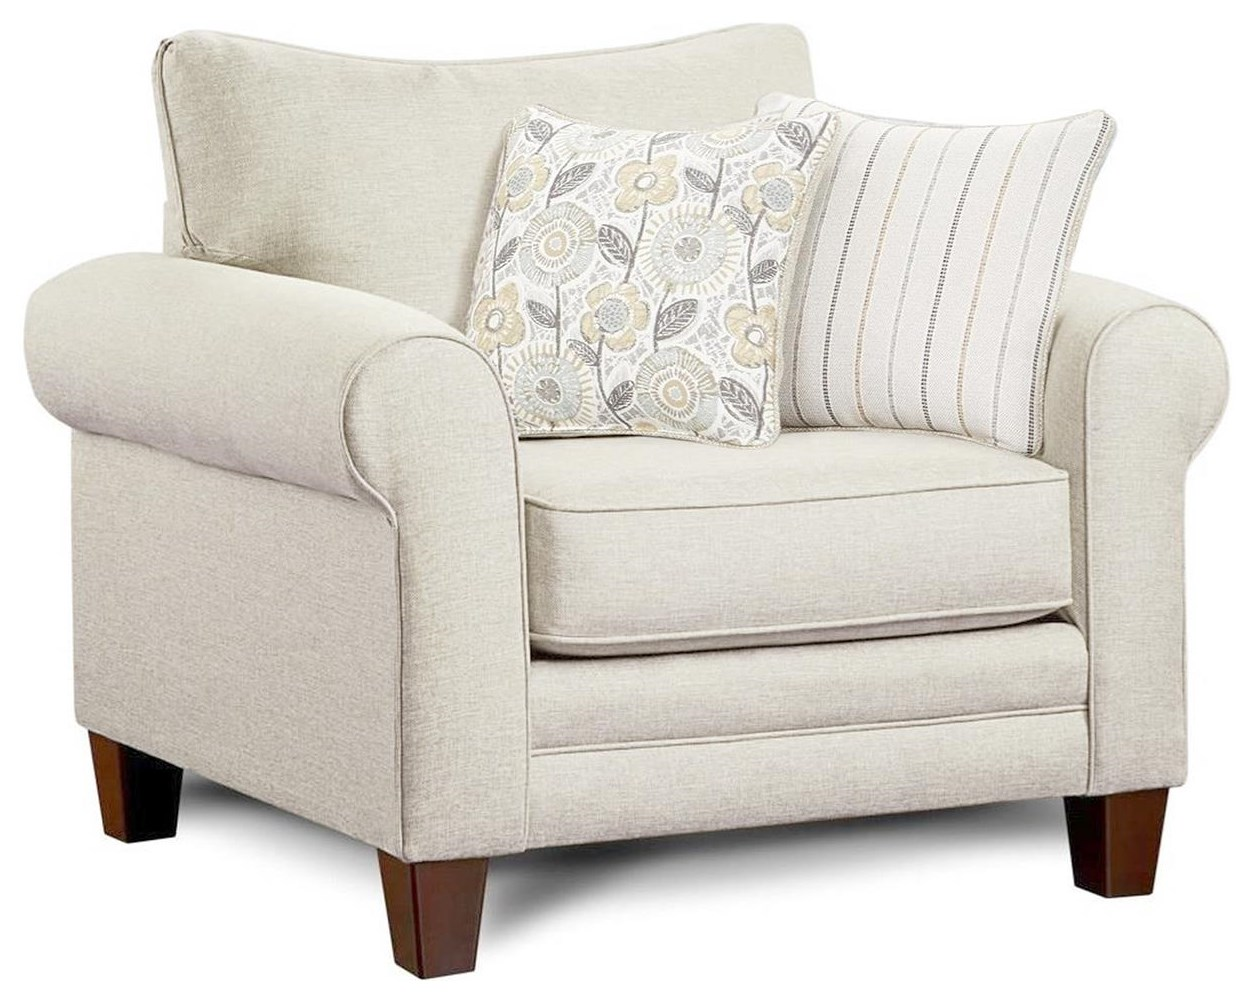 1140 Chair and 1/2 by Kent Home Furnishings at Johnny Janosik